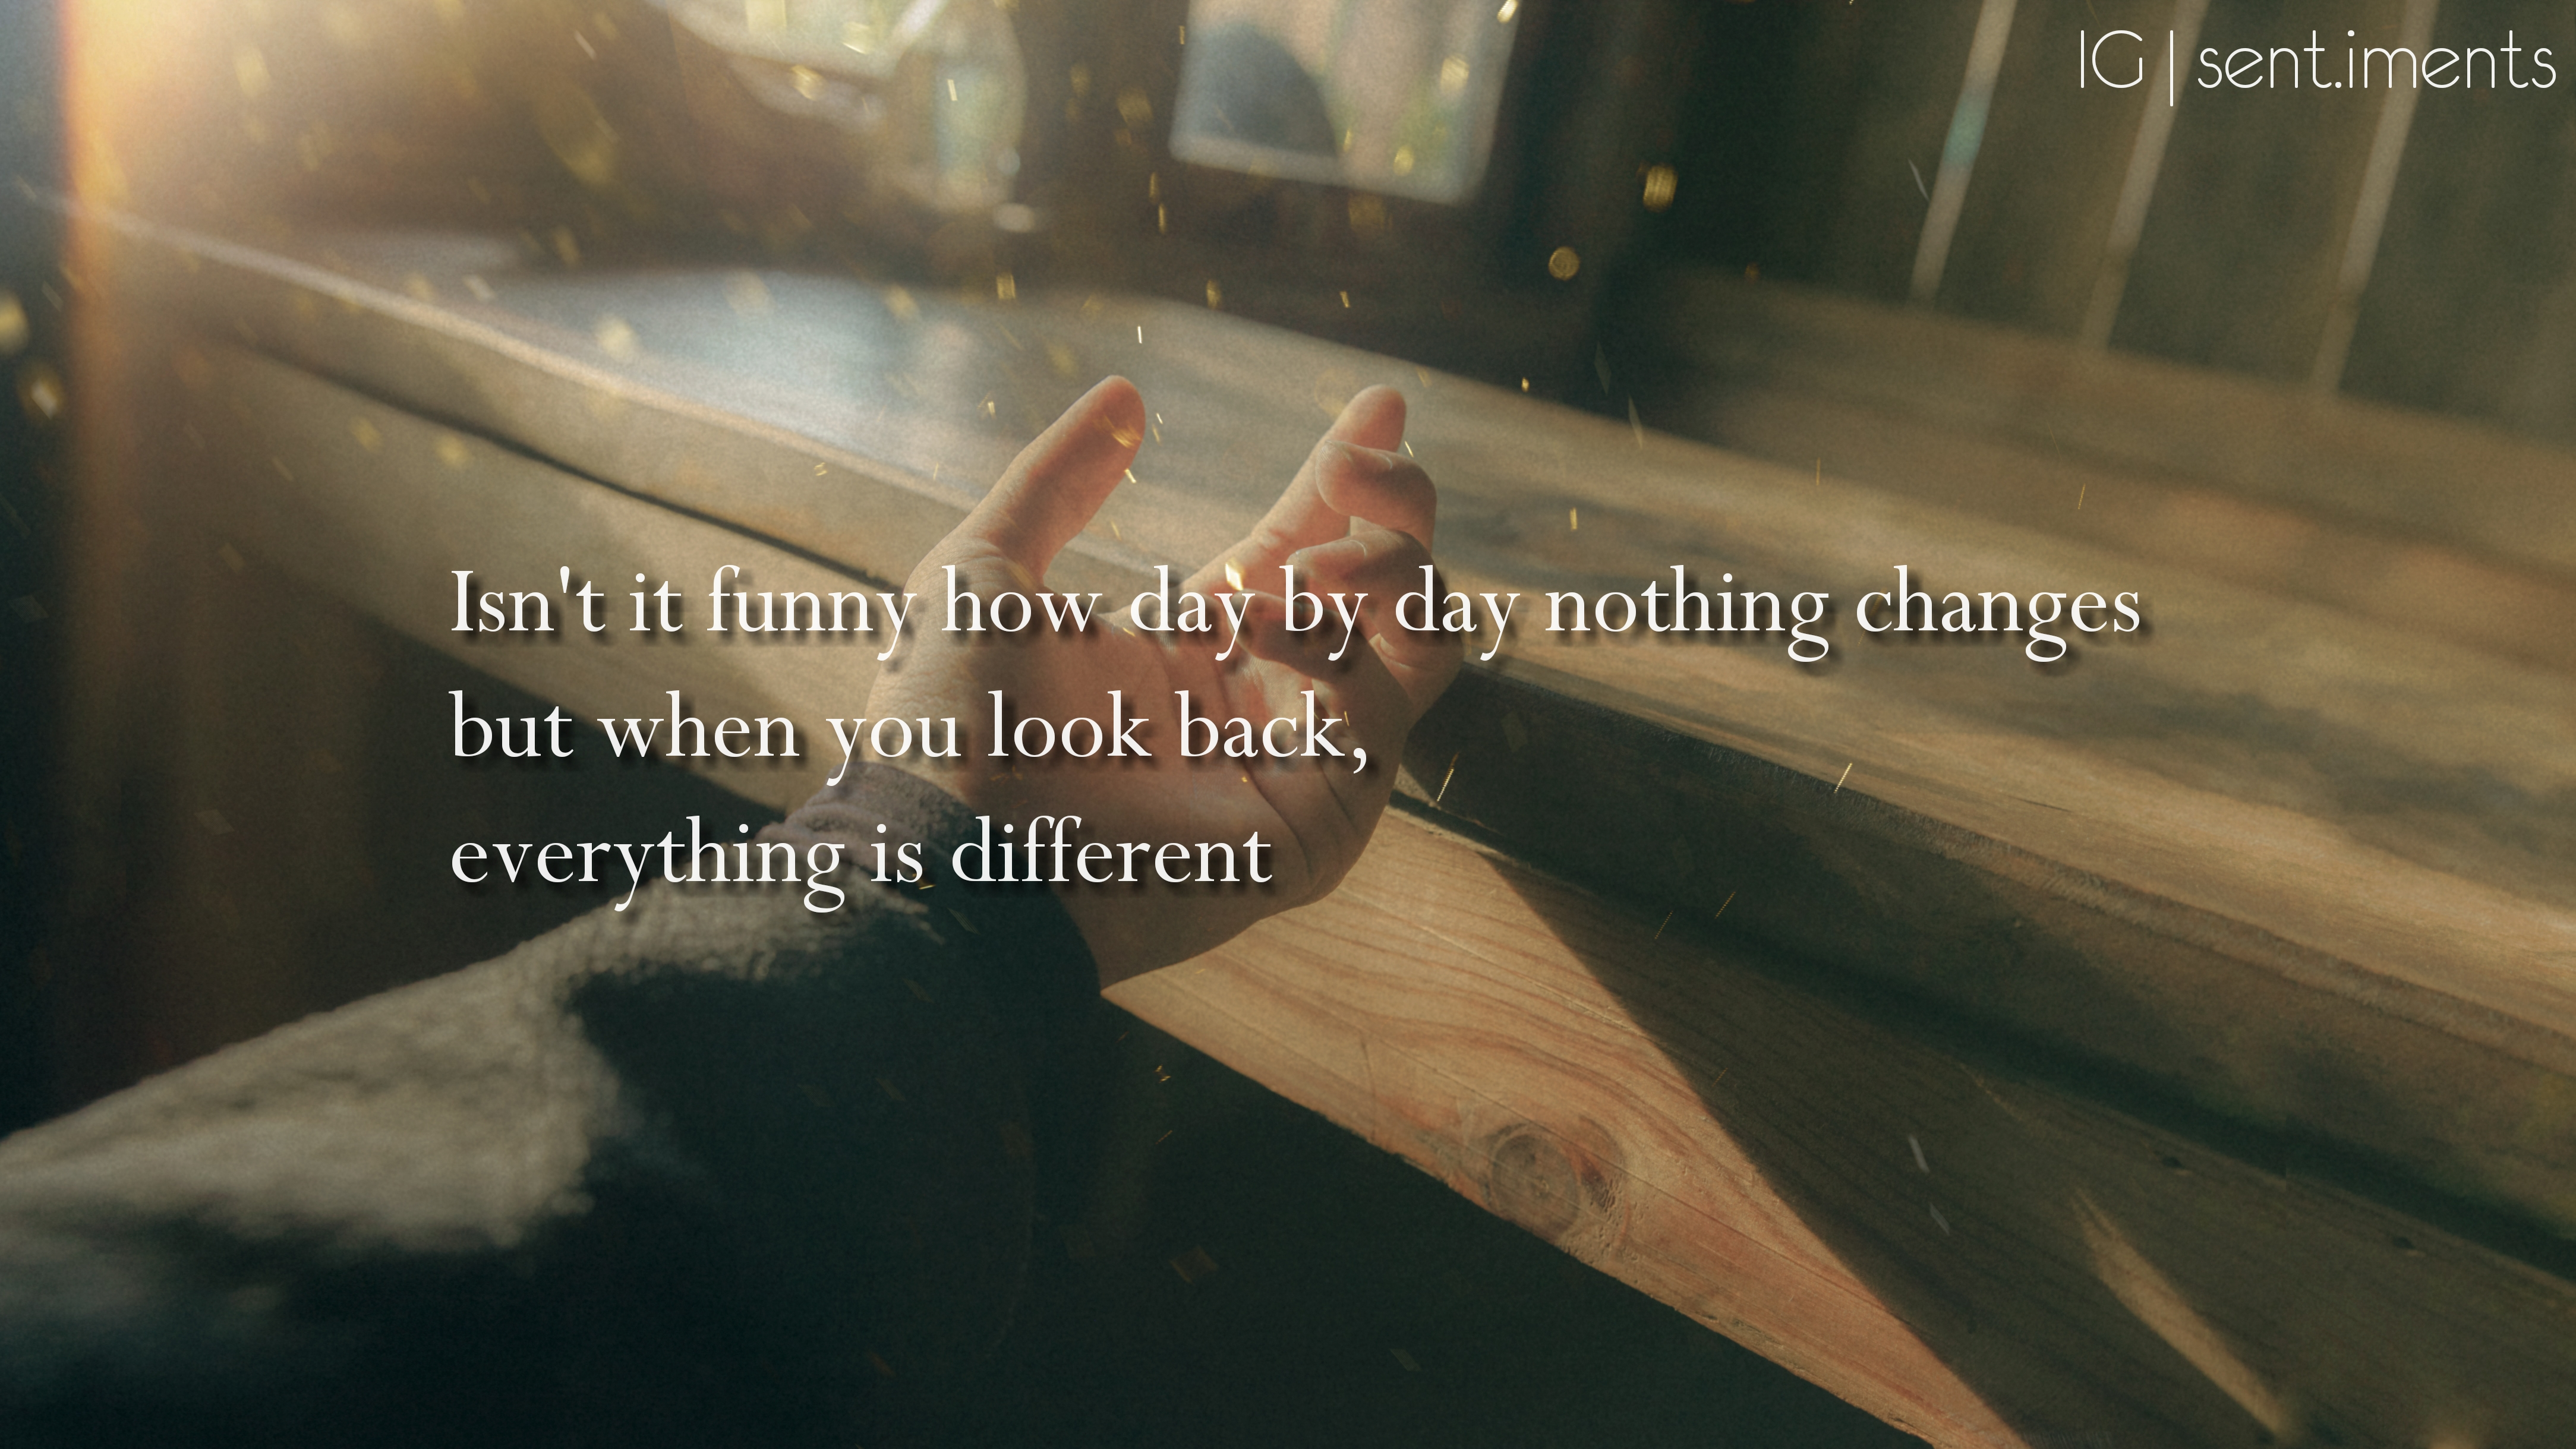 """Isn't it funny how day by day nothing changes but when you look back, everything is different"" by C.S. Lewis [4335 X 2439]"